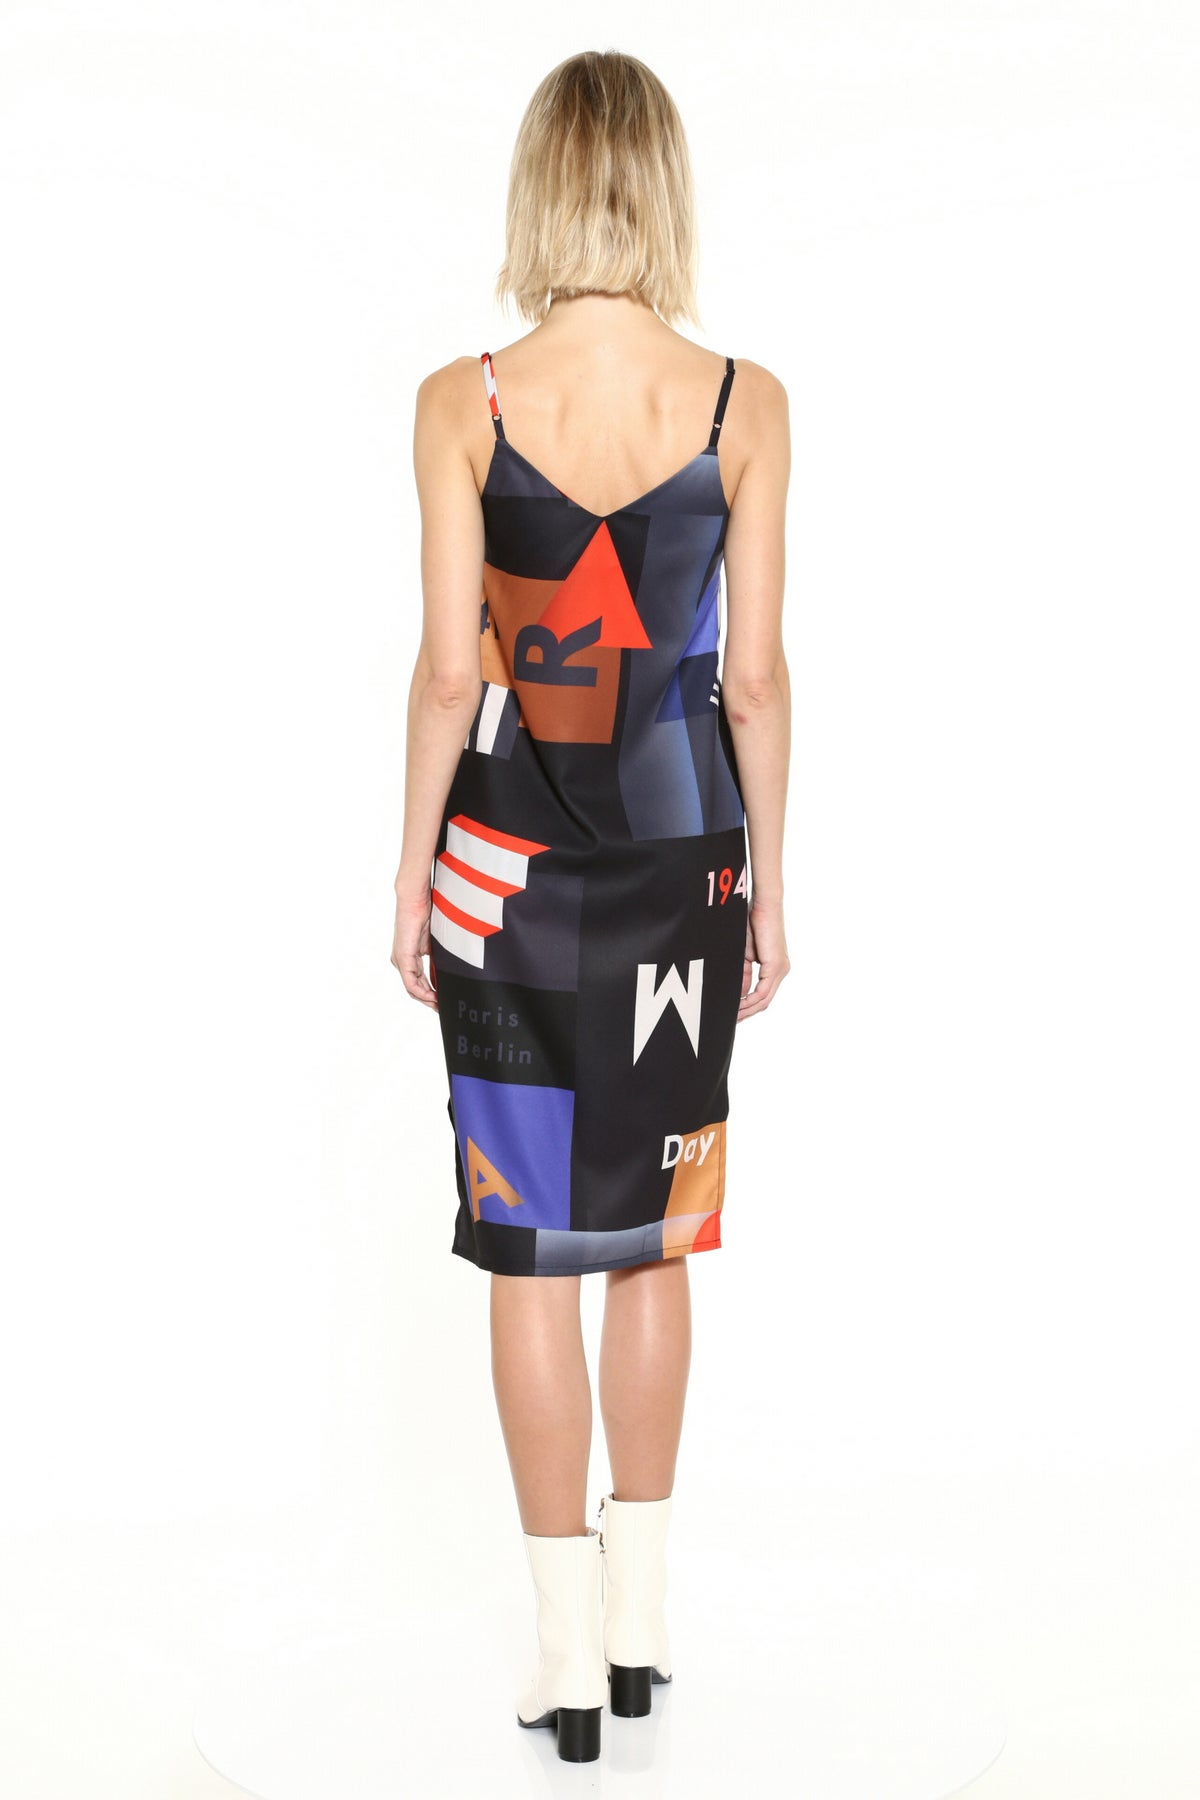 Image of Matter Matters Gallery - Tank dress - Mokita black